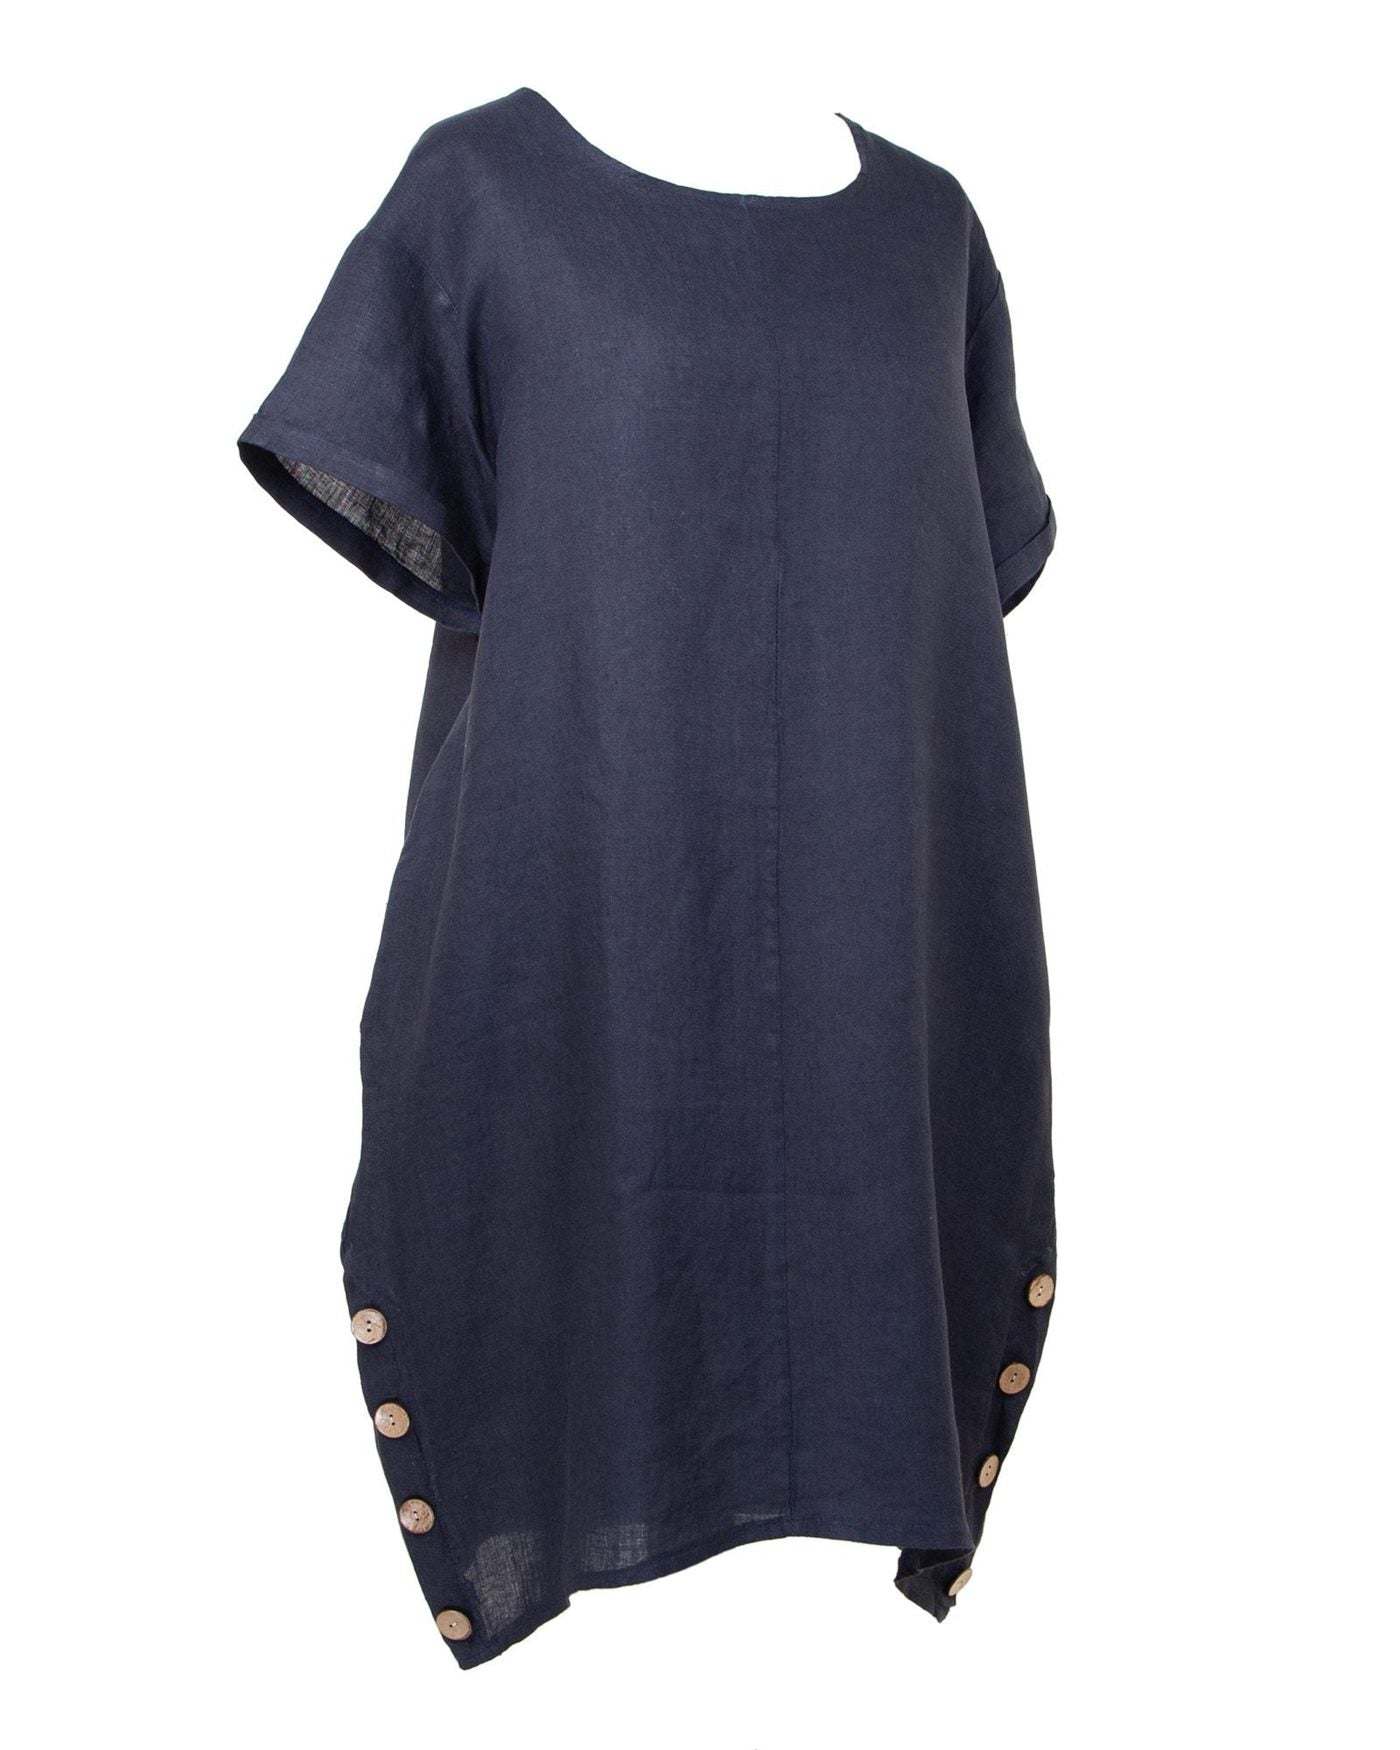 Cadenza Italy Casual Linen Dress with Buttons - Navy Blue